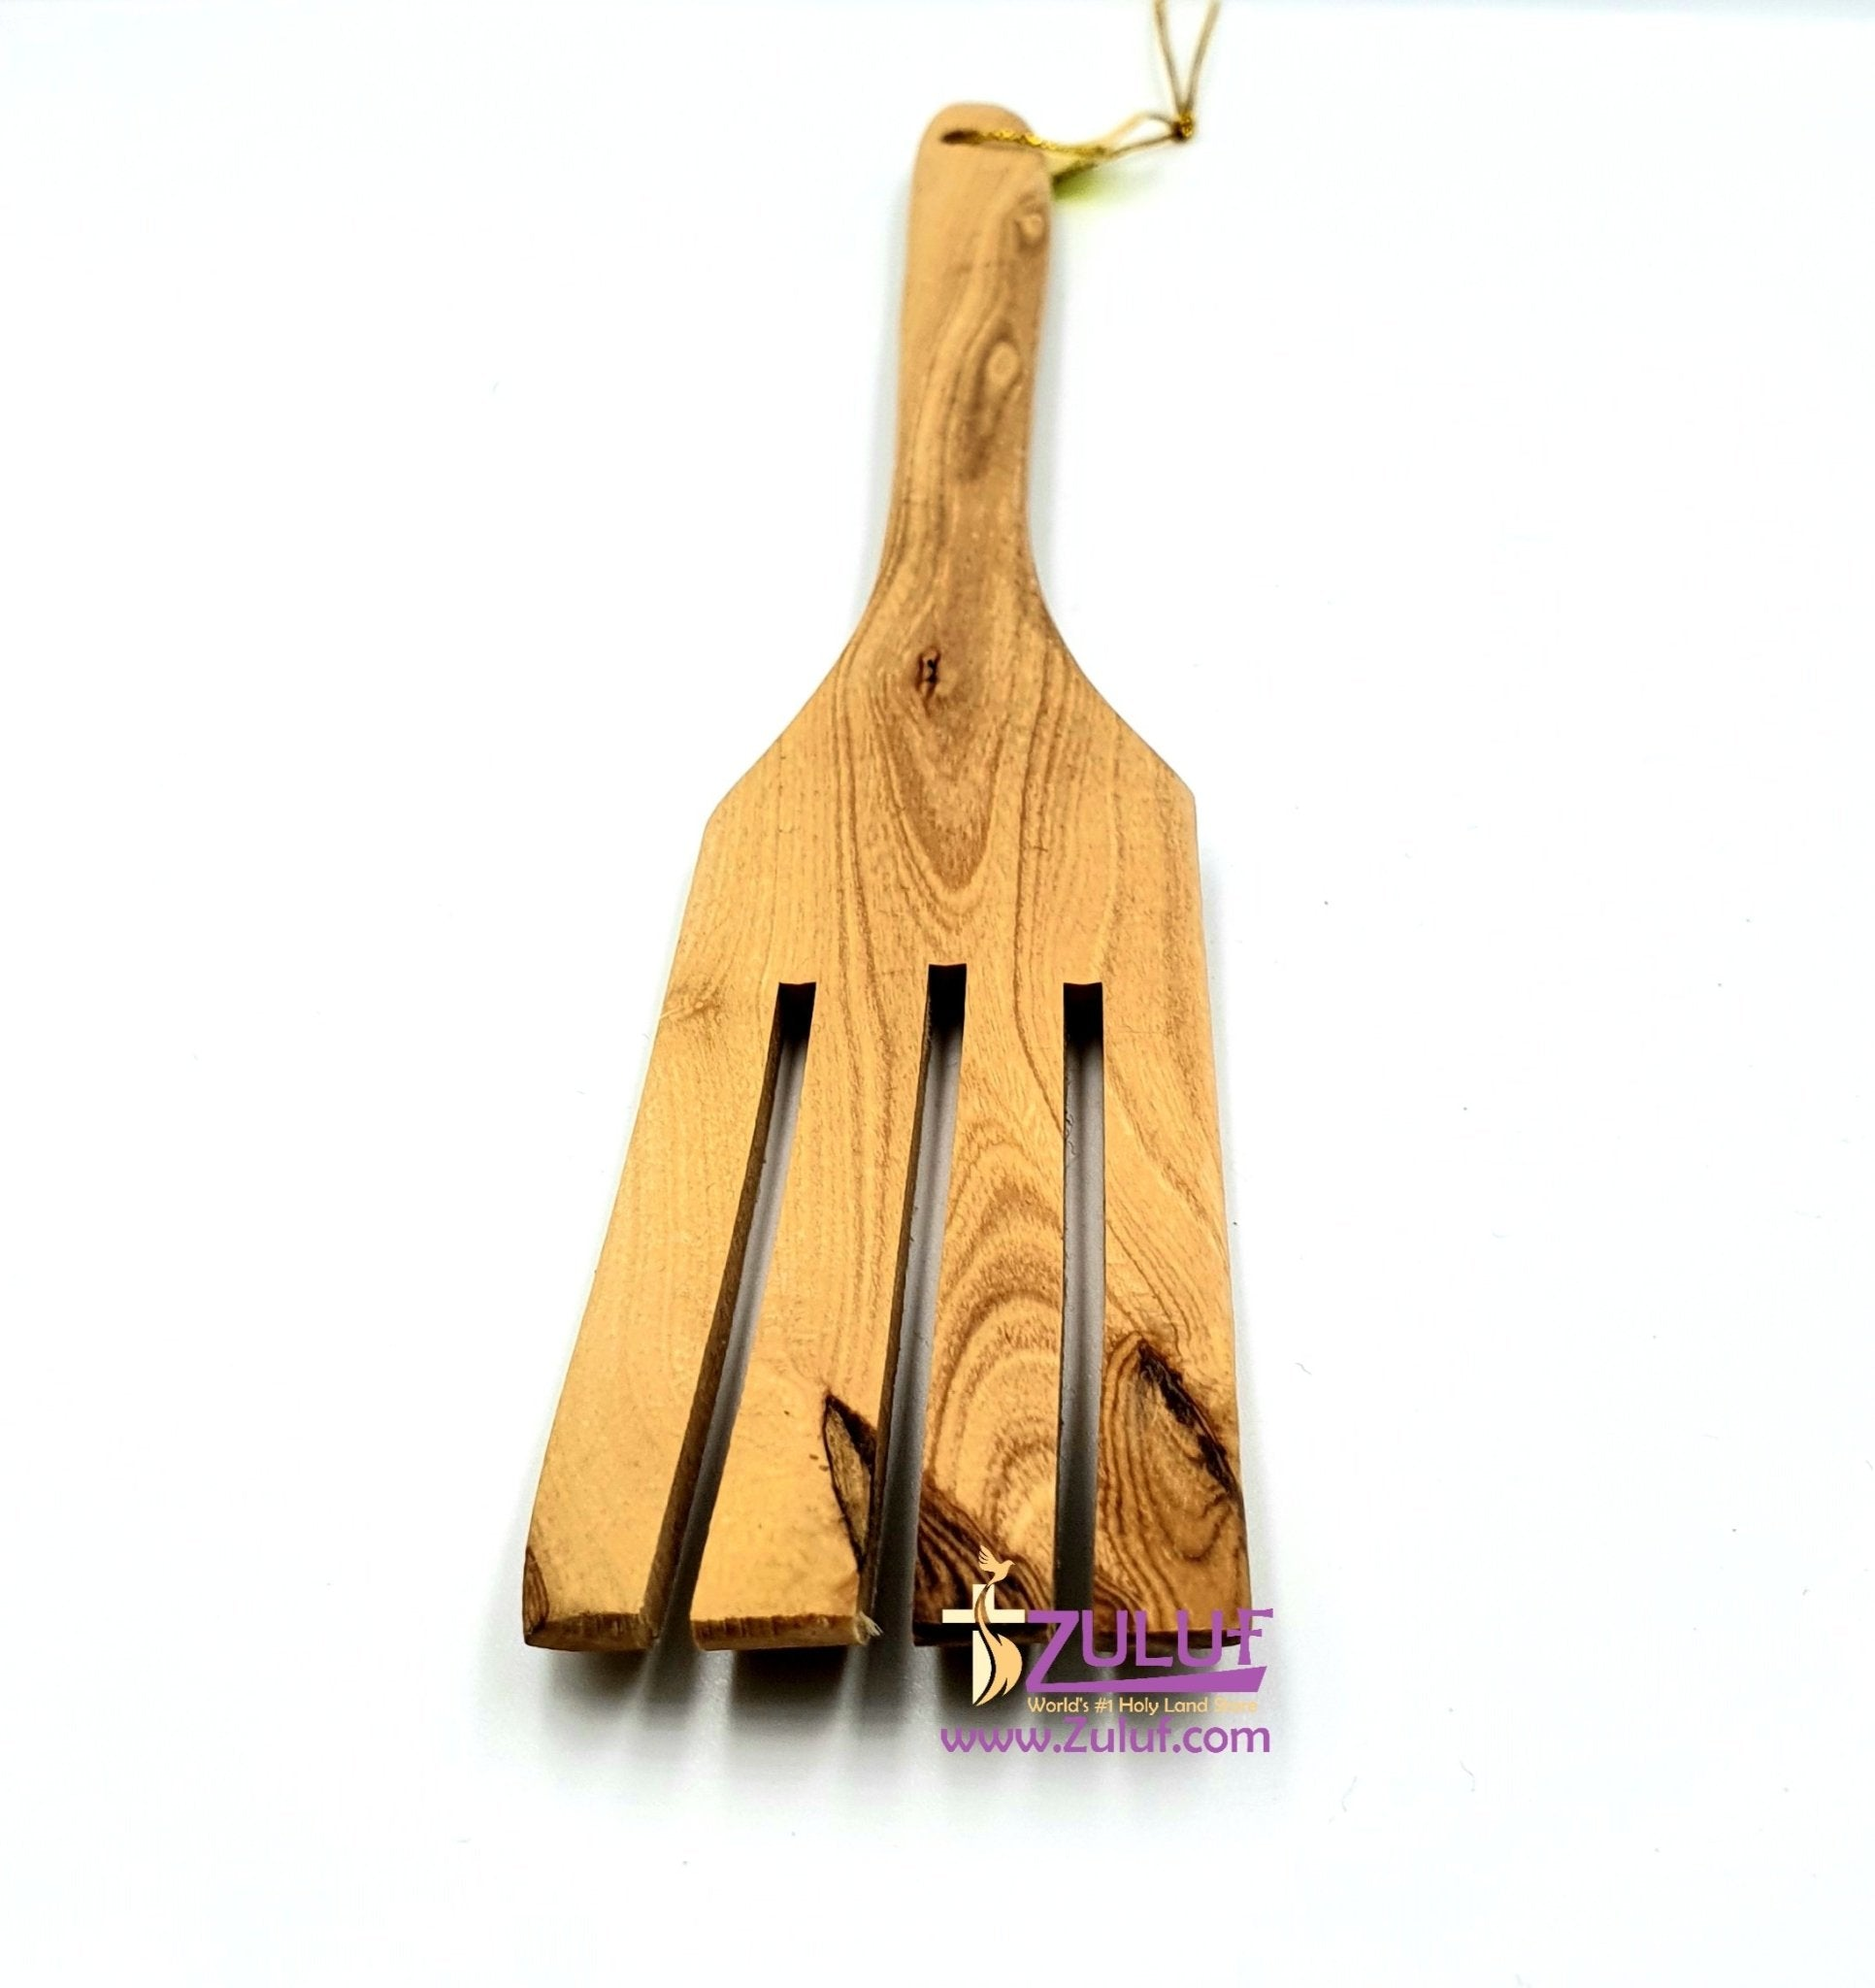 Olive wood hand made forg KIT005 - Zuluf